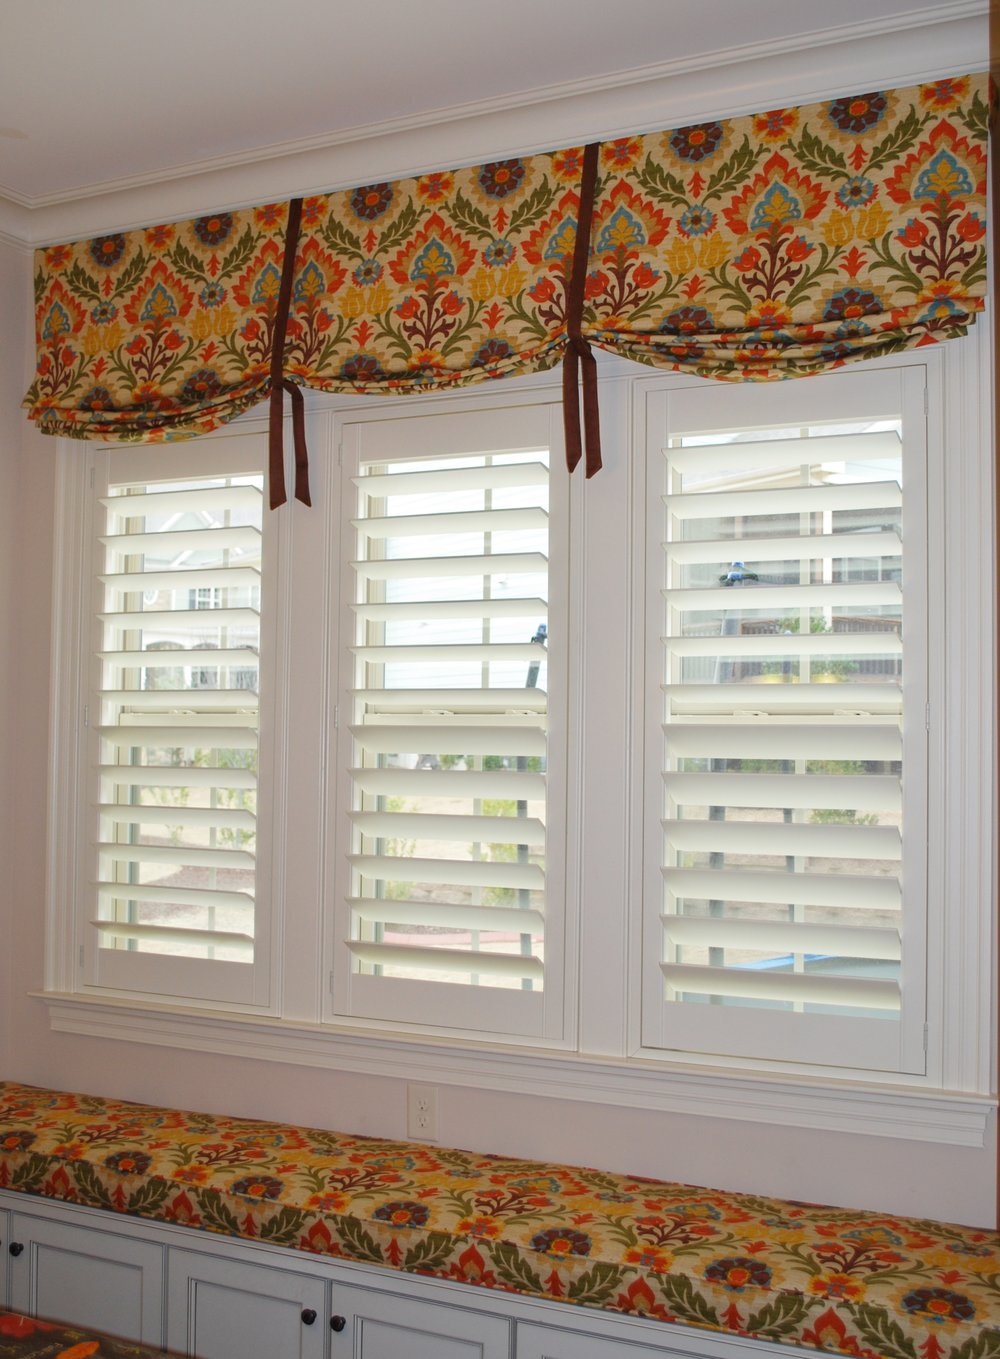 Valance with ties and window seat cushion